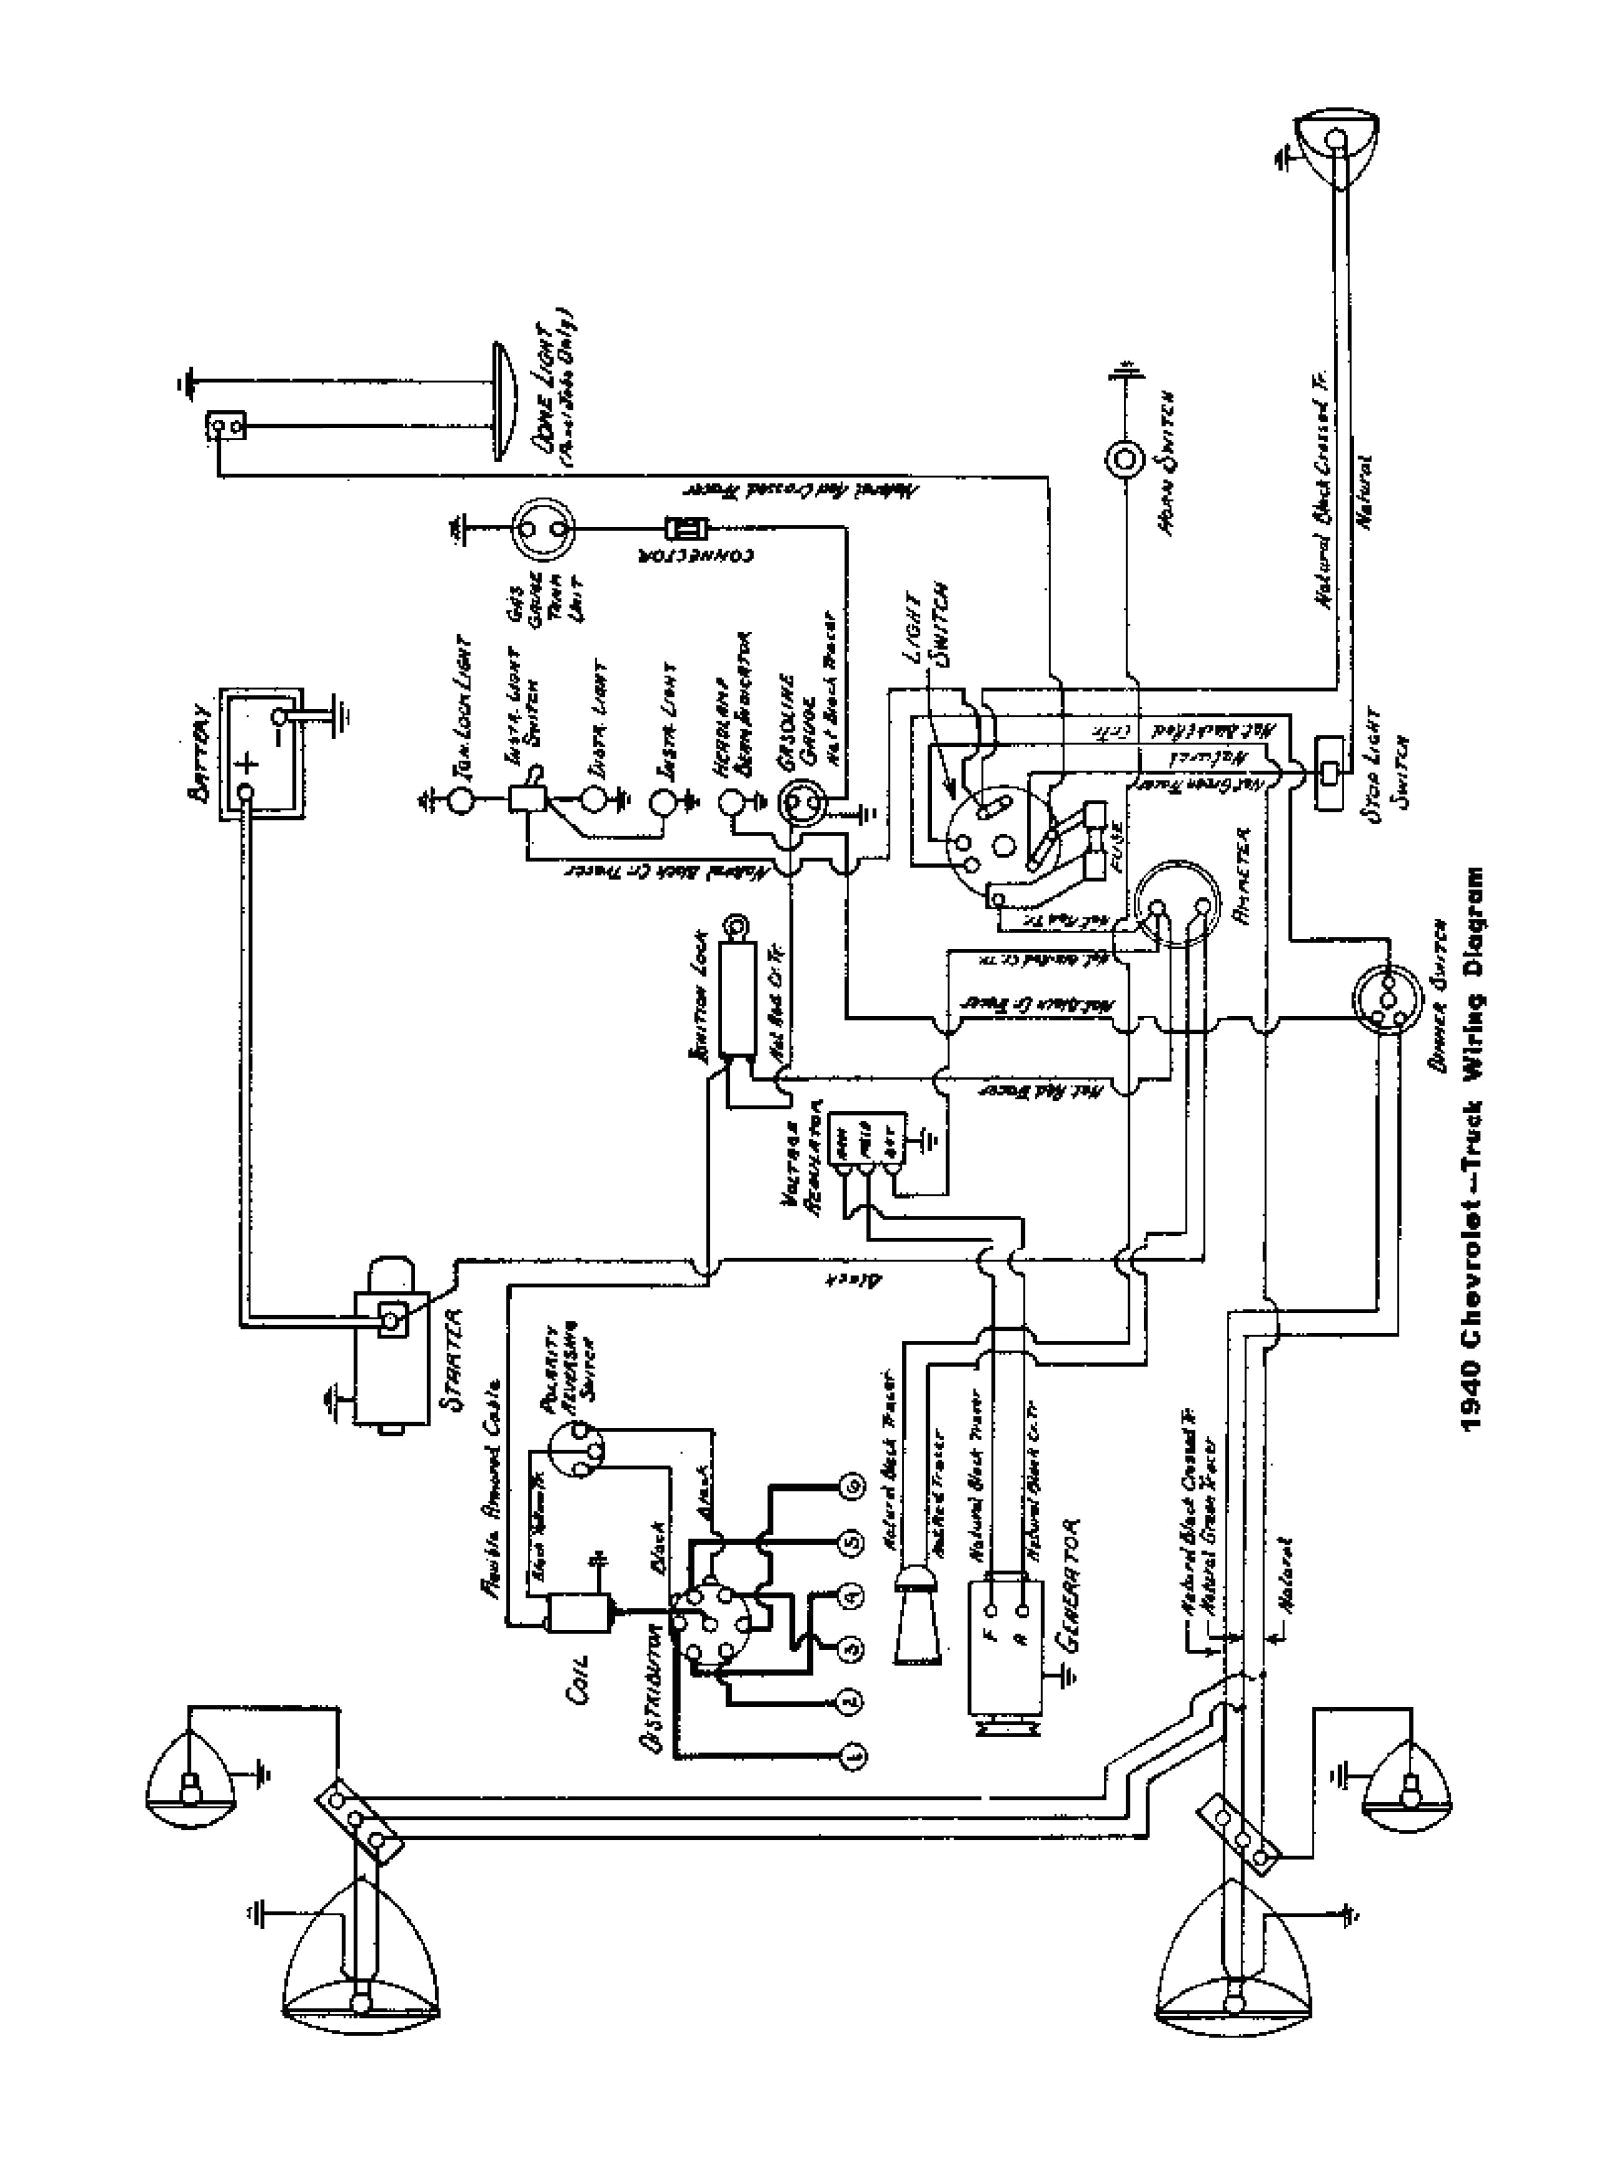 wiring diagram for 1940 chevy business coupe get free image about 1940 chevy truck wiring harness